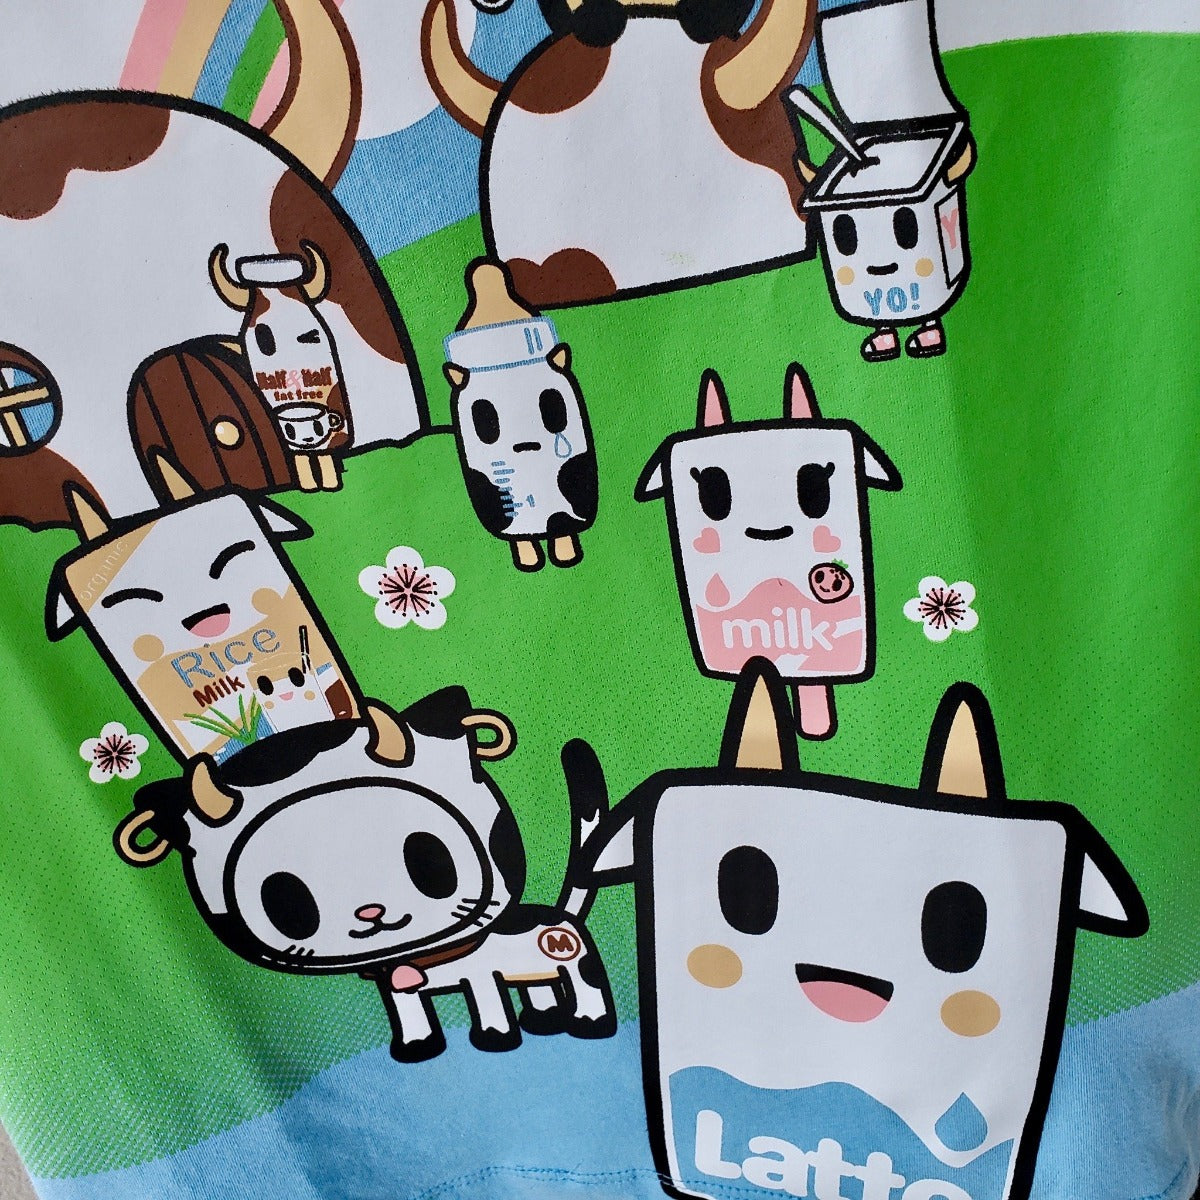 tokidoki See You Latte light blue t-shirt design closeup